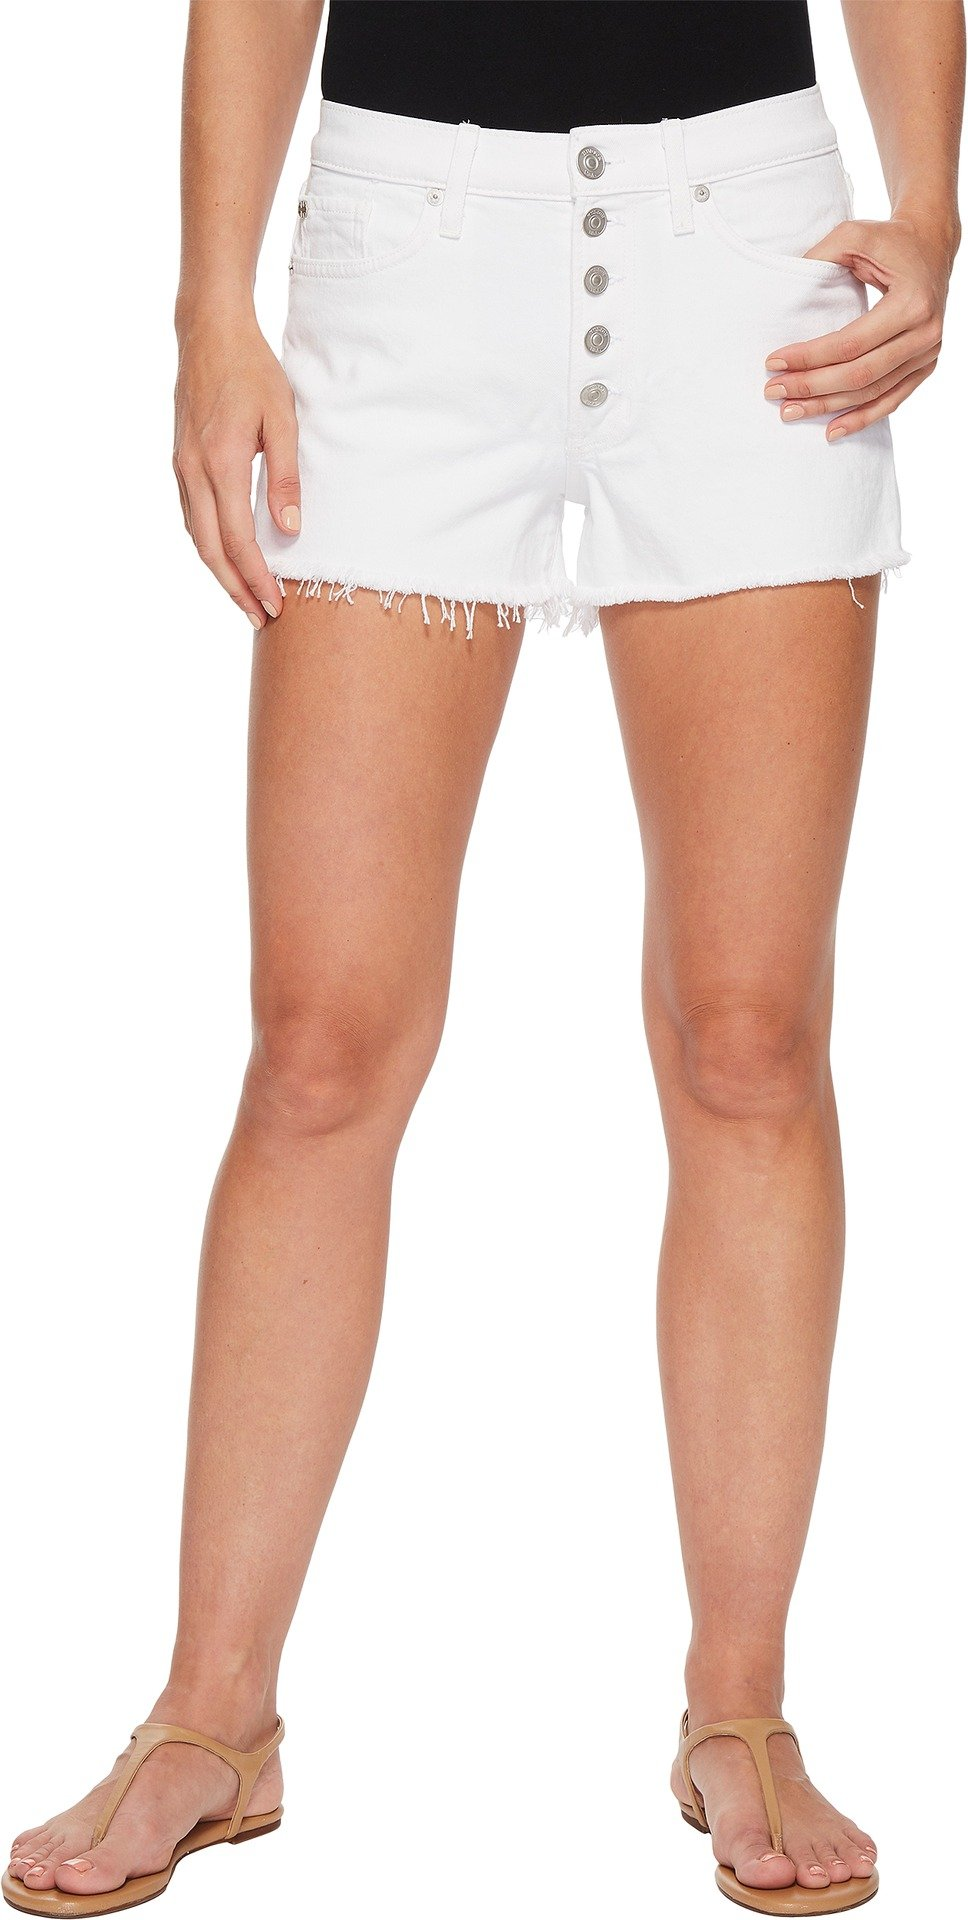 HUDSON Women's Zoeey High-Rise Button Cut Off Shorts In White White 27 3